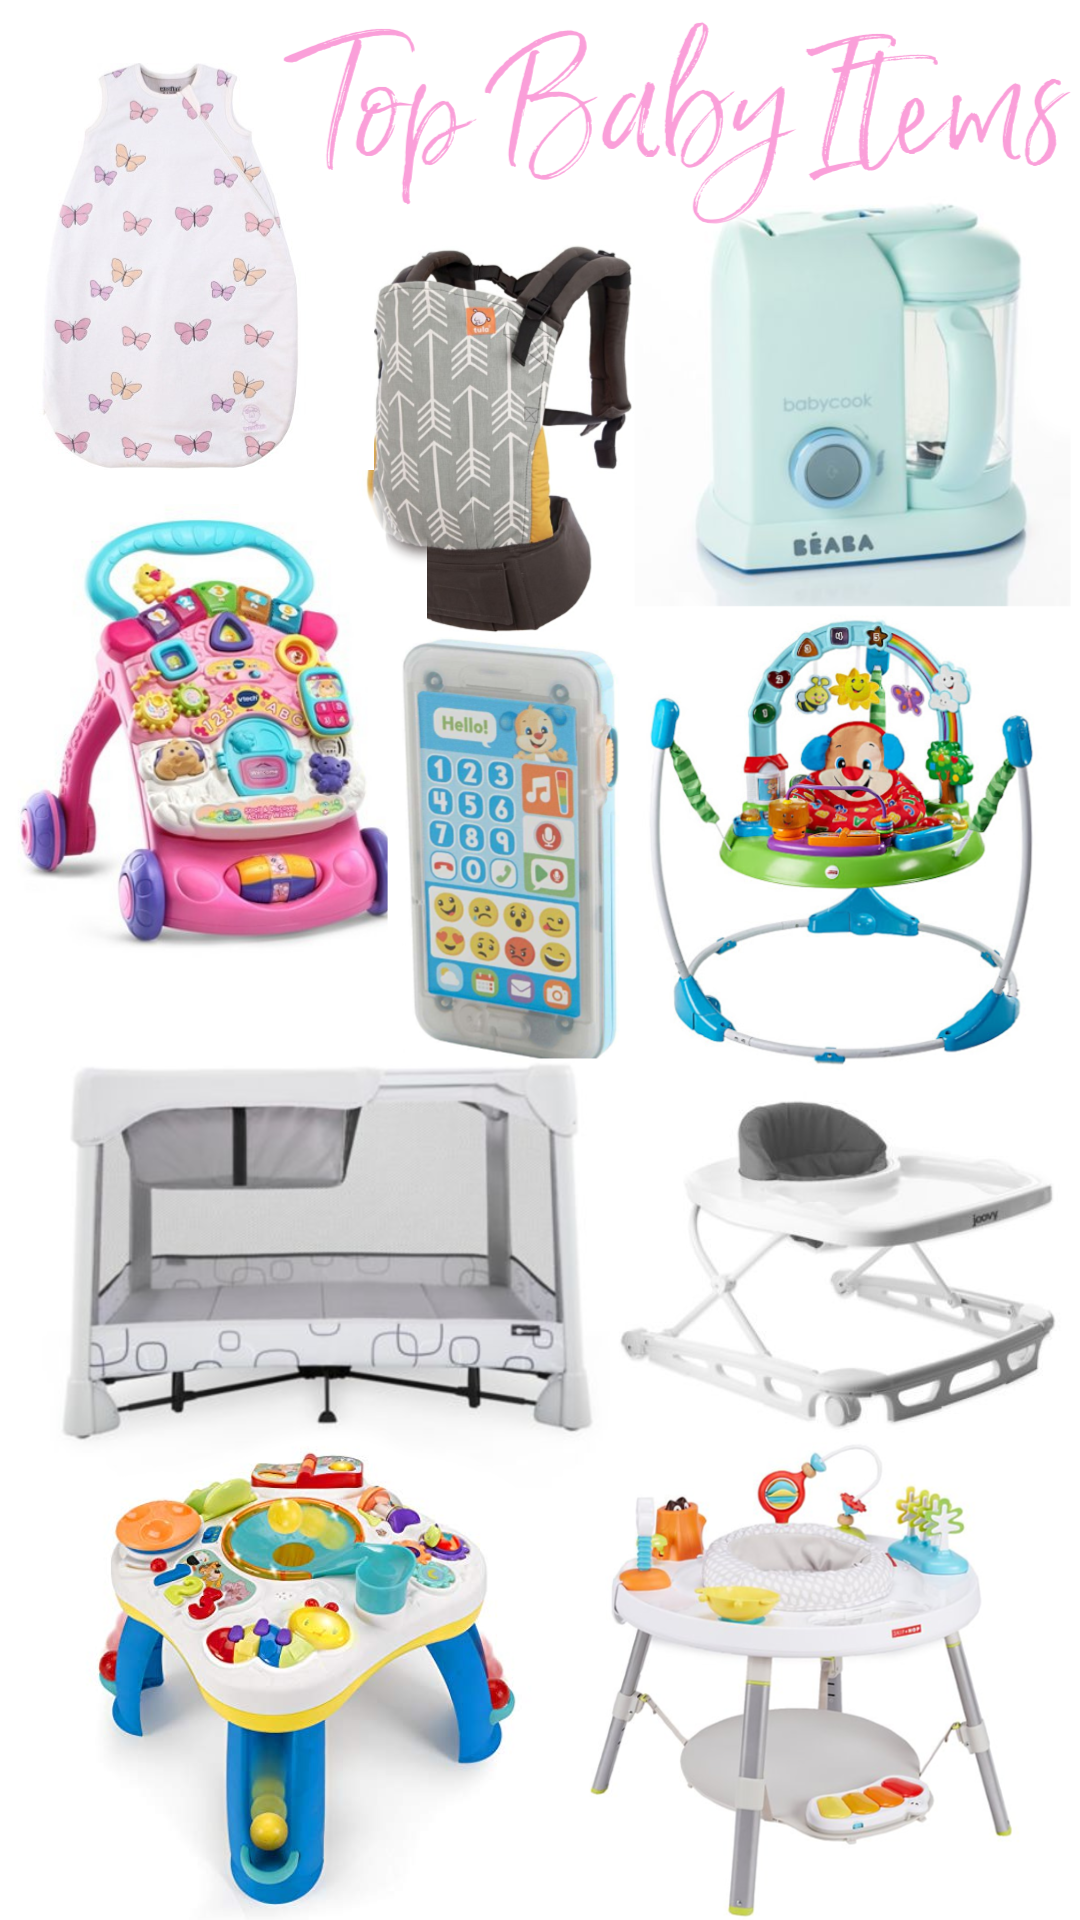 Our Favorite Baby Products 6-12 Months